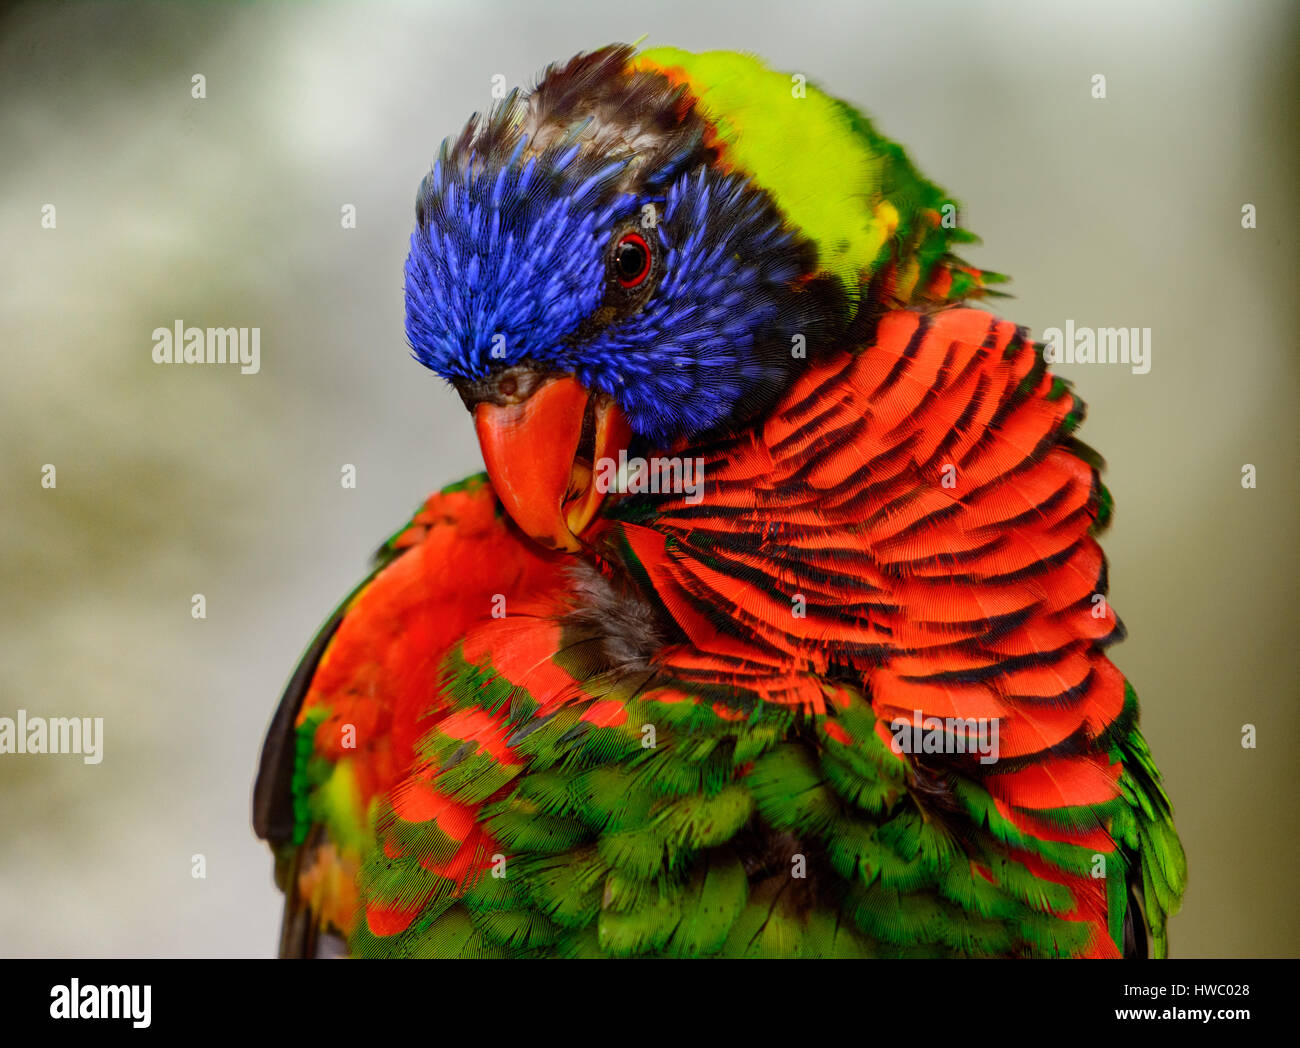 Rainbow lori (Trichoglossus moluccanus) close-up as he grooms his feathers. - Stock Image